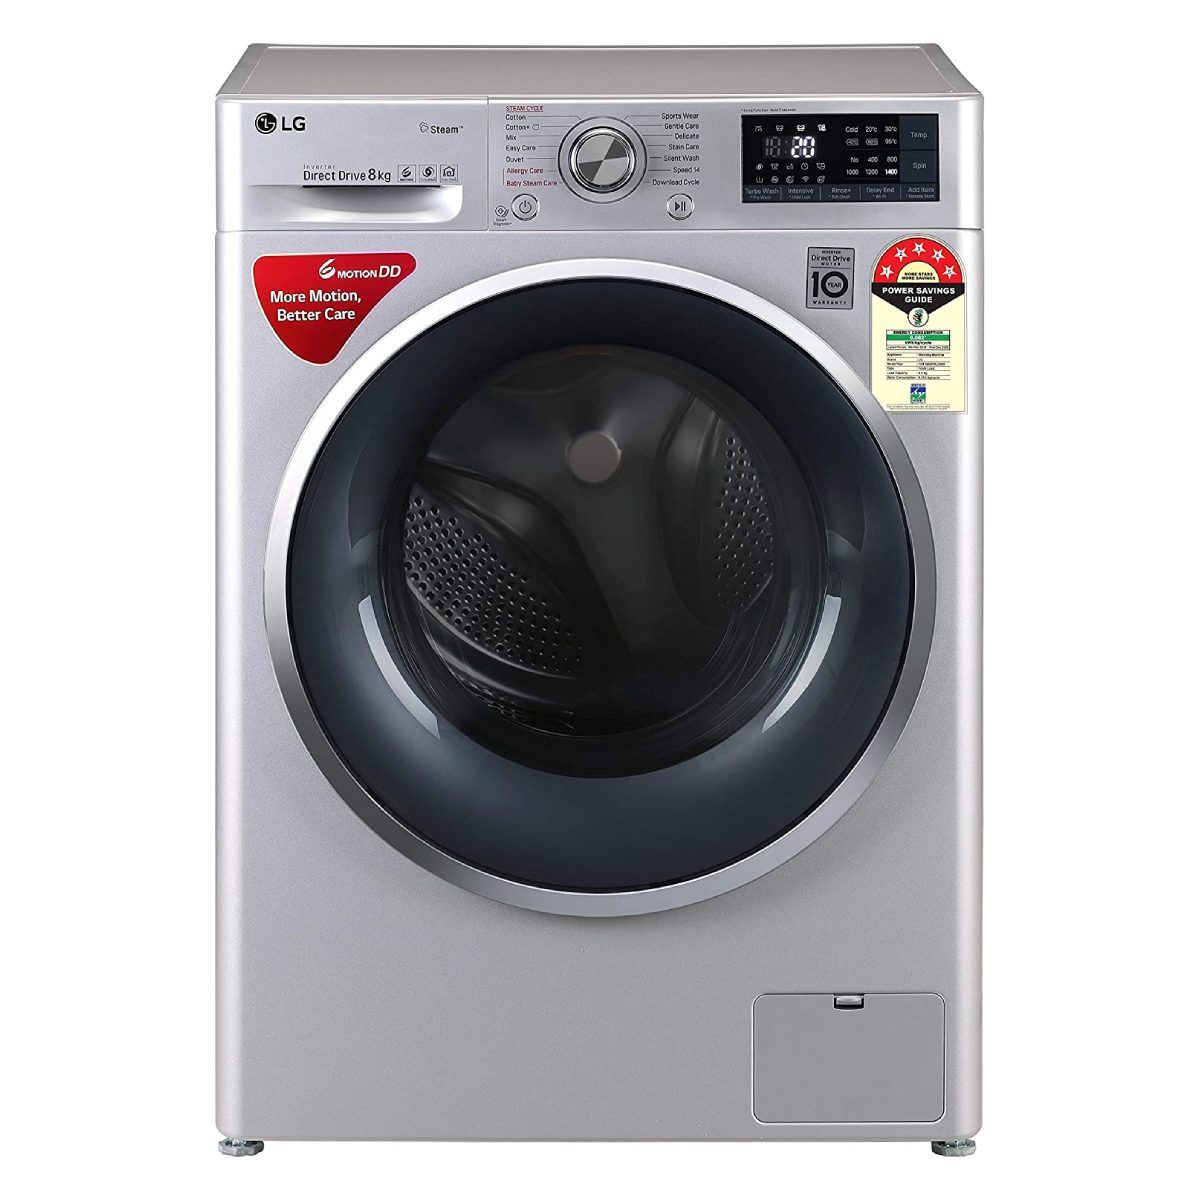 LG 8 kg 5 Star Inverter Wi-Fi Fully-Automatic Front Loading Washing Machine (FHT1408ZWL)